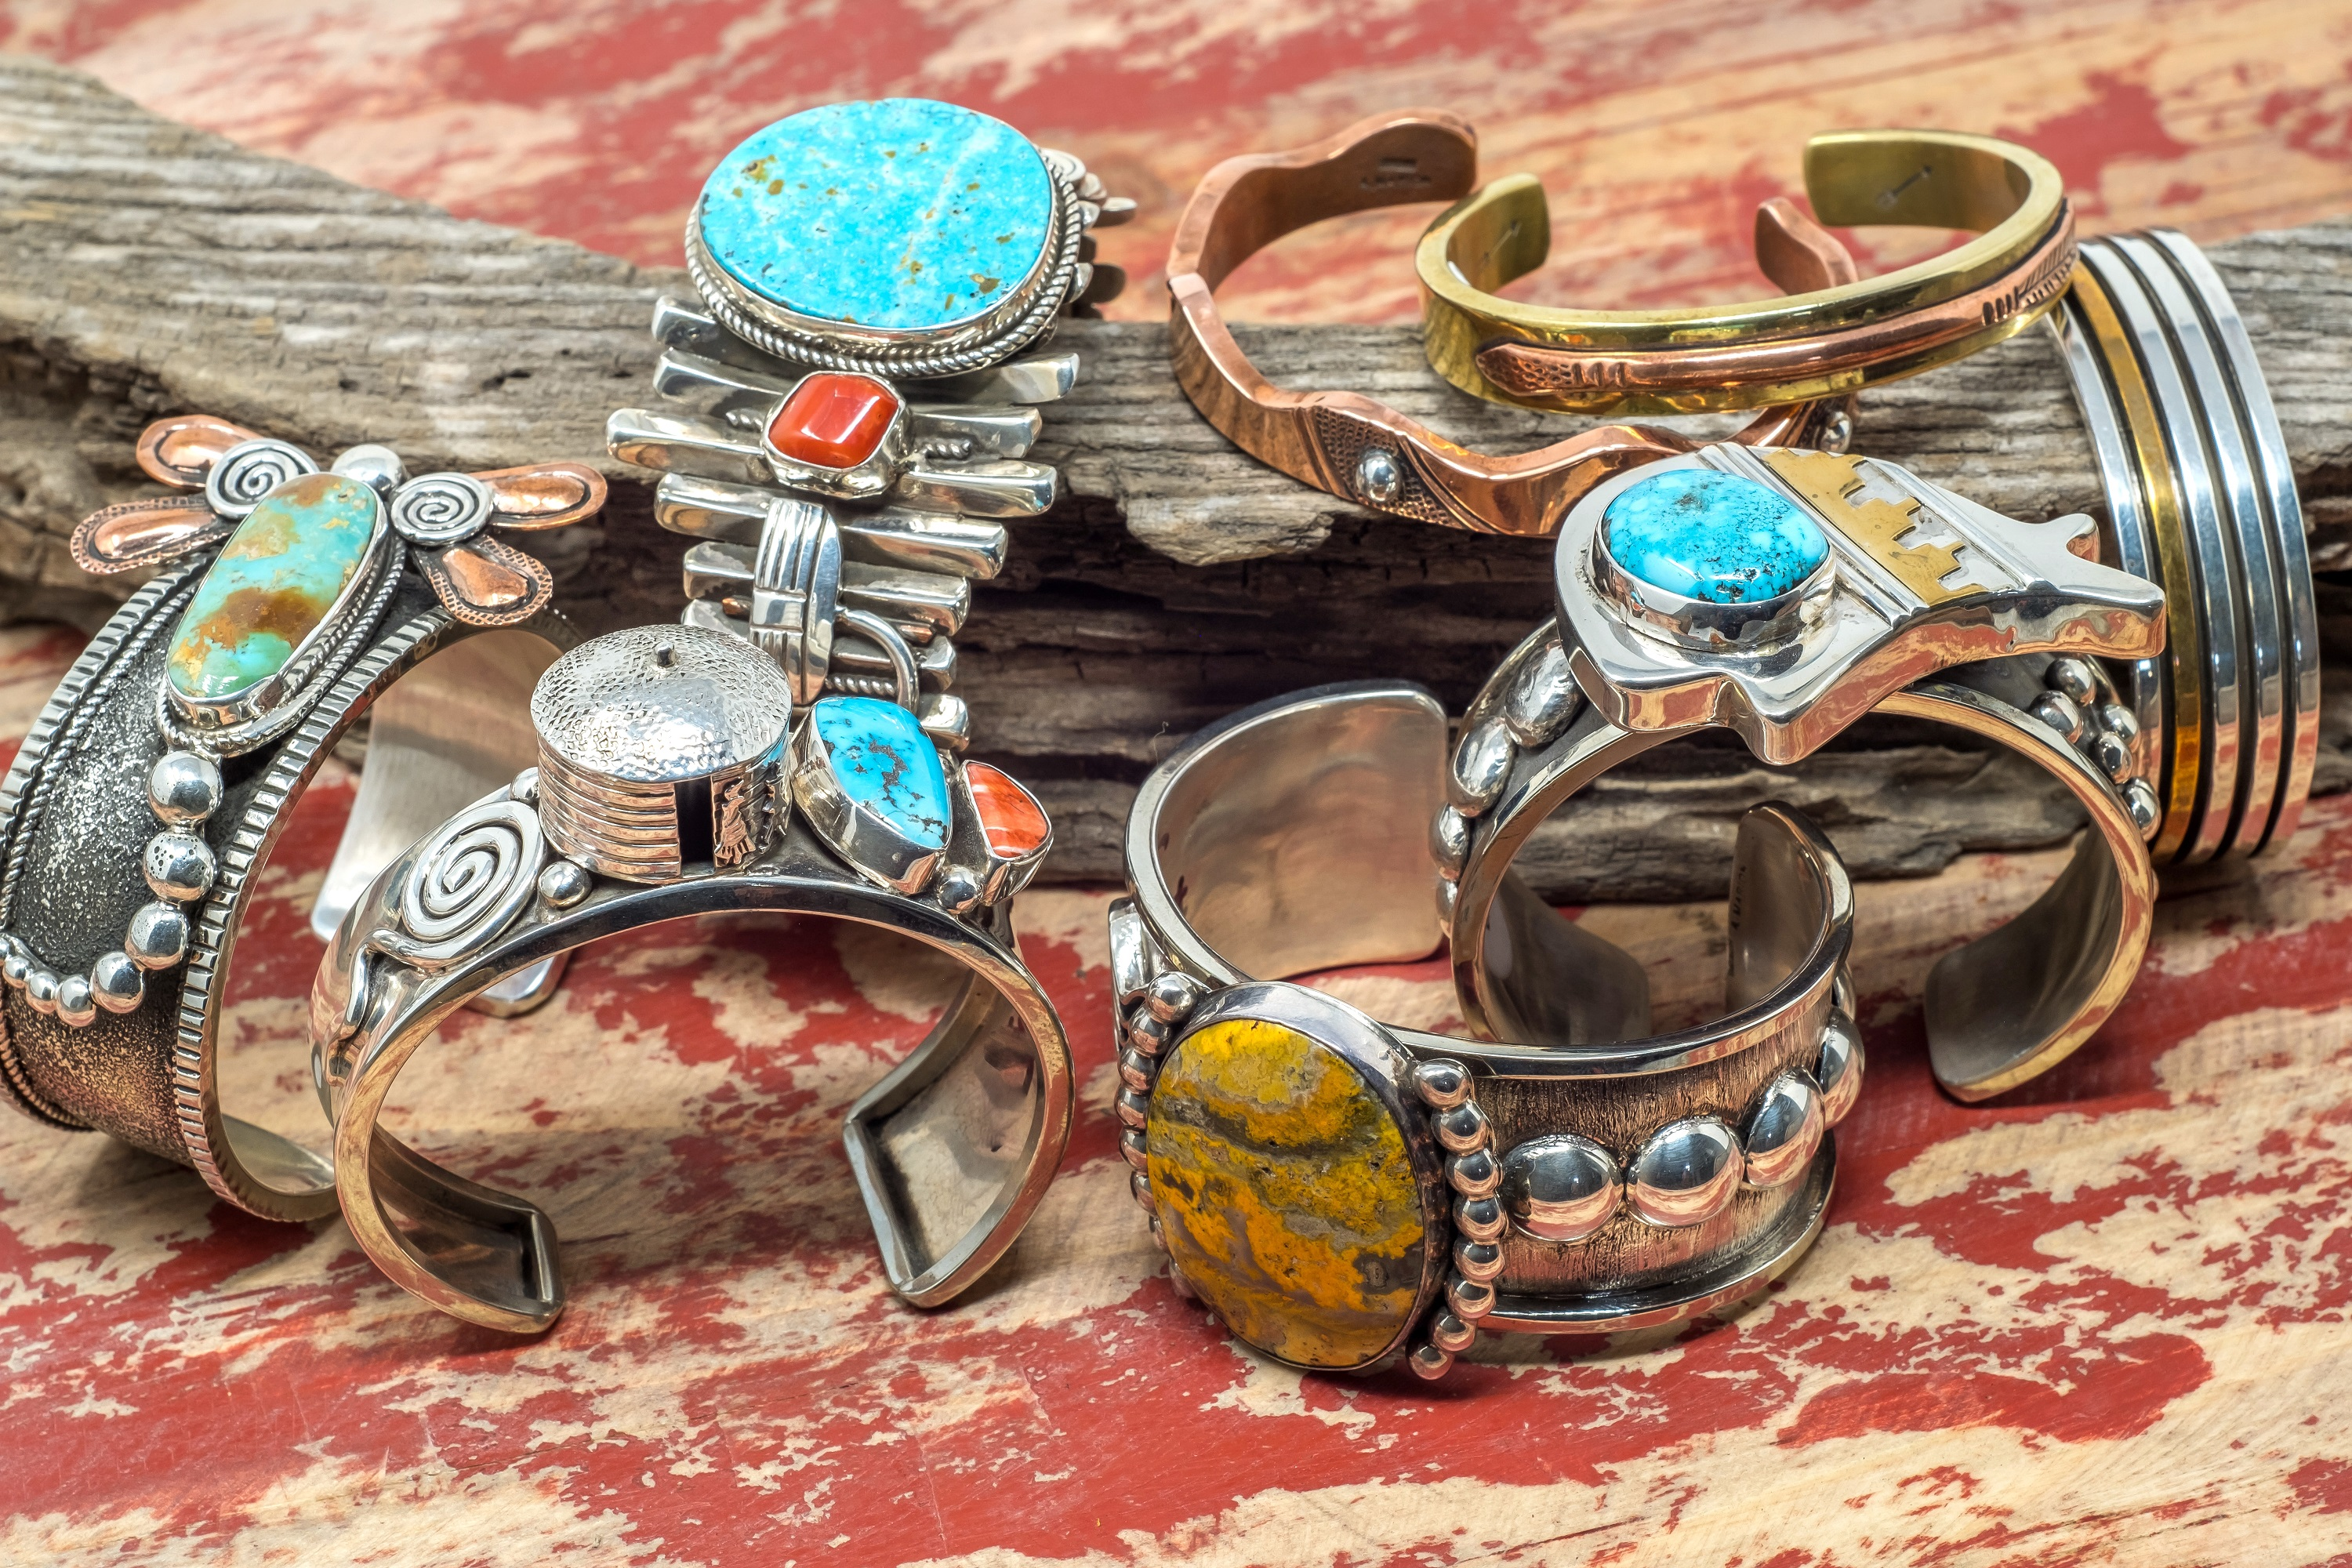 You can find jewelry by these artists—and by many more Native American designers—at the Pickle Barrel Trading Post, a family owned and operated business ...